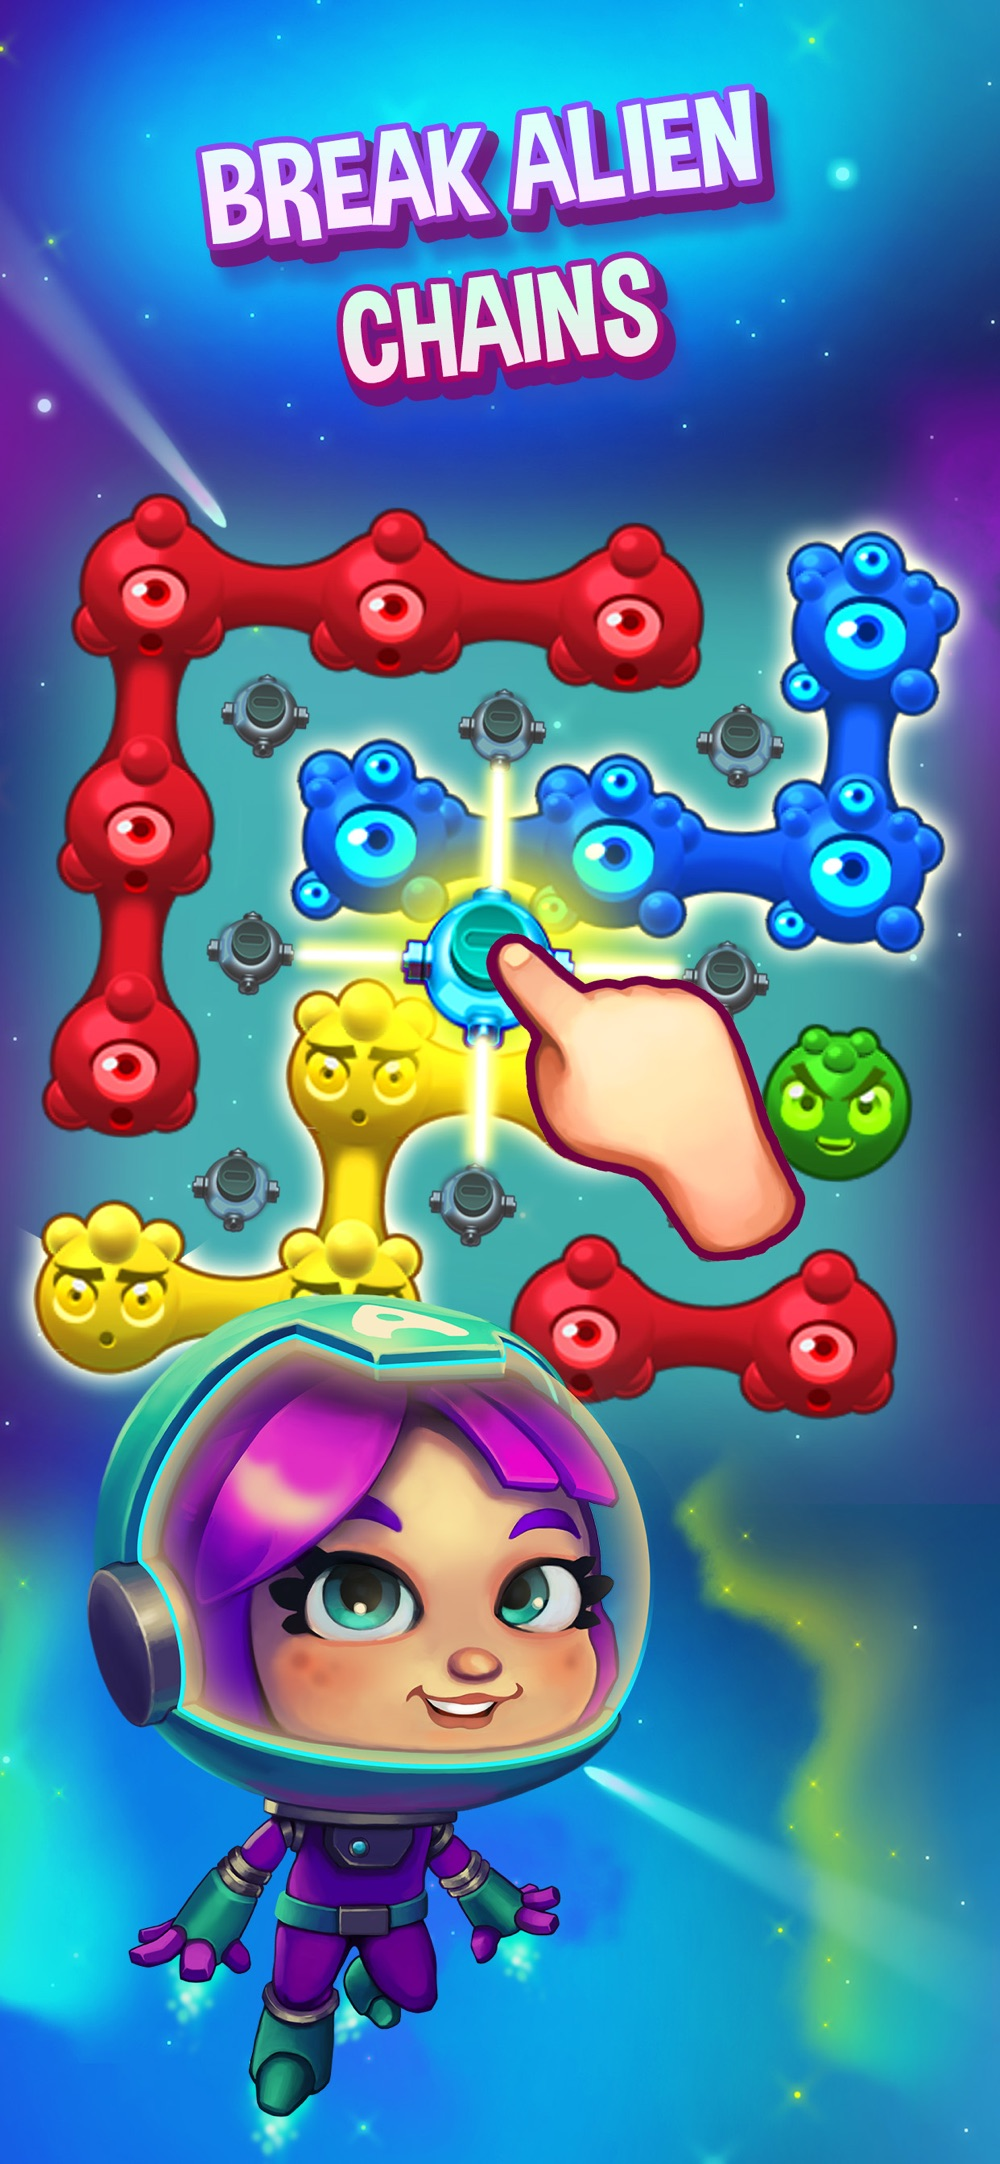 Aliens in Chains Space Puzzle hack tool